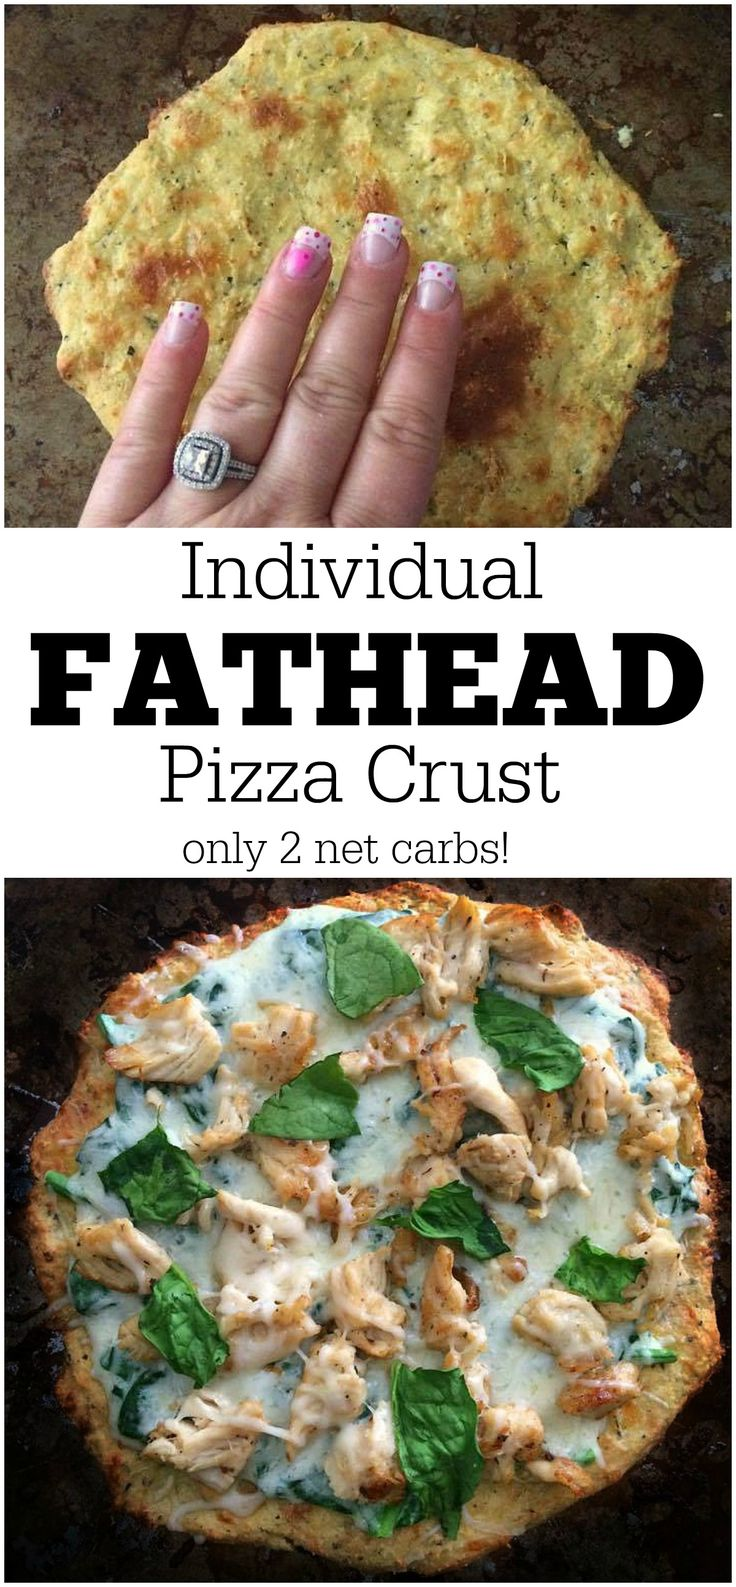 Fathead pizza? Haven't heard of it? If you are eating low carb, you will absolutely love this. Come check it out! Only 1 net carb per serving.***group says to use coconut flour instead of almond flour***